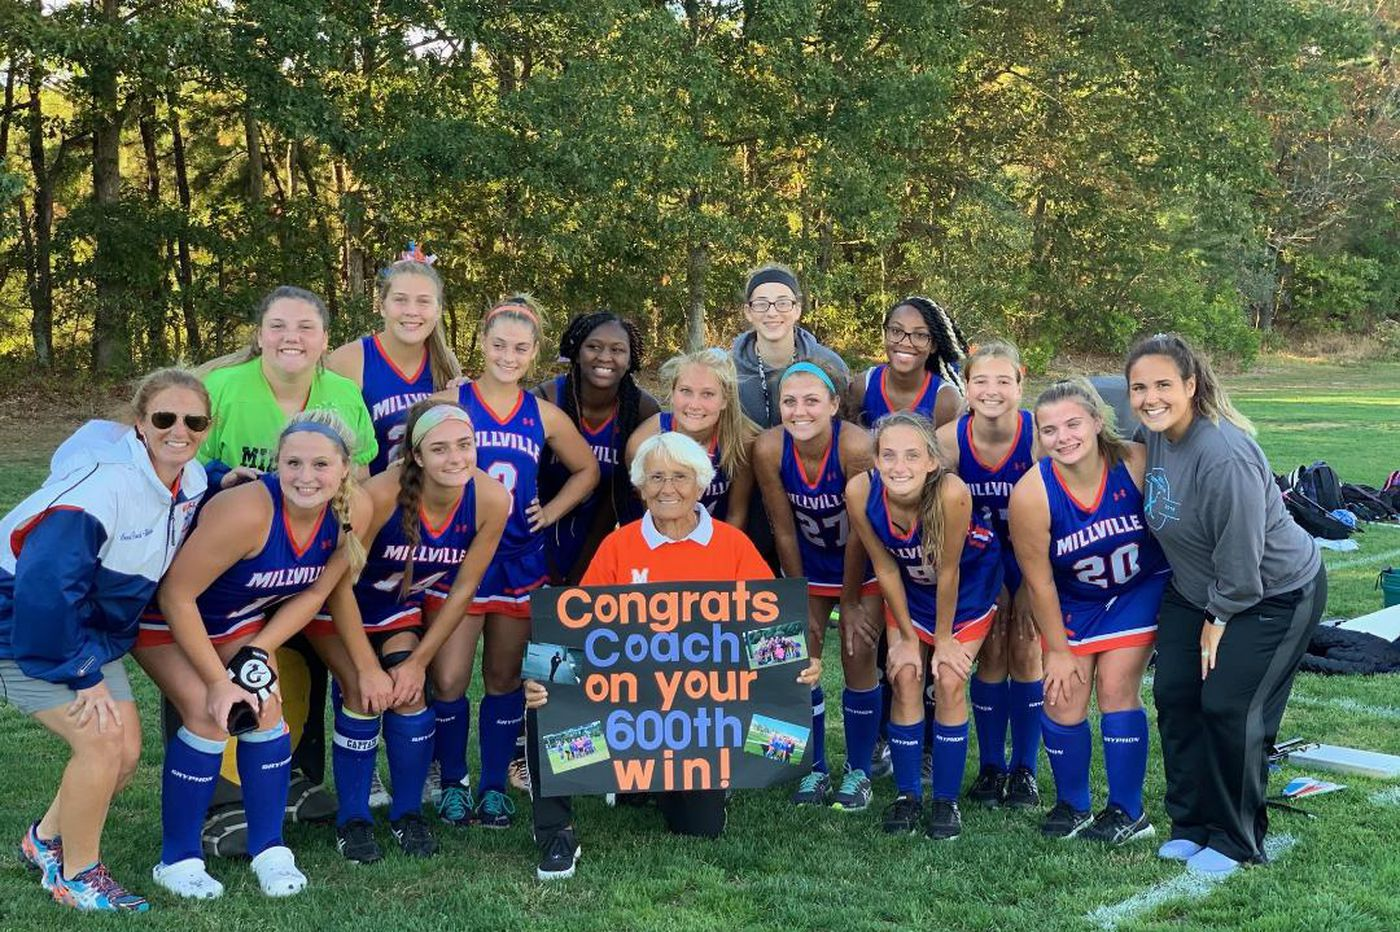 Thursday's South Jersey roundup: Claudia McCarthy wins 600th game as Millville field hockey coach